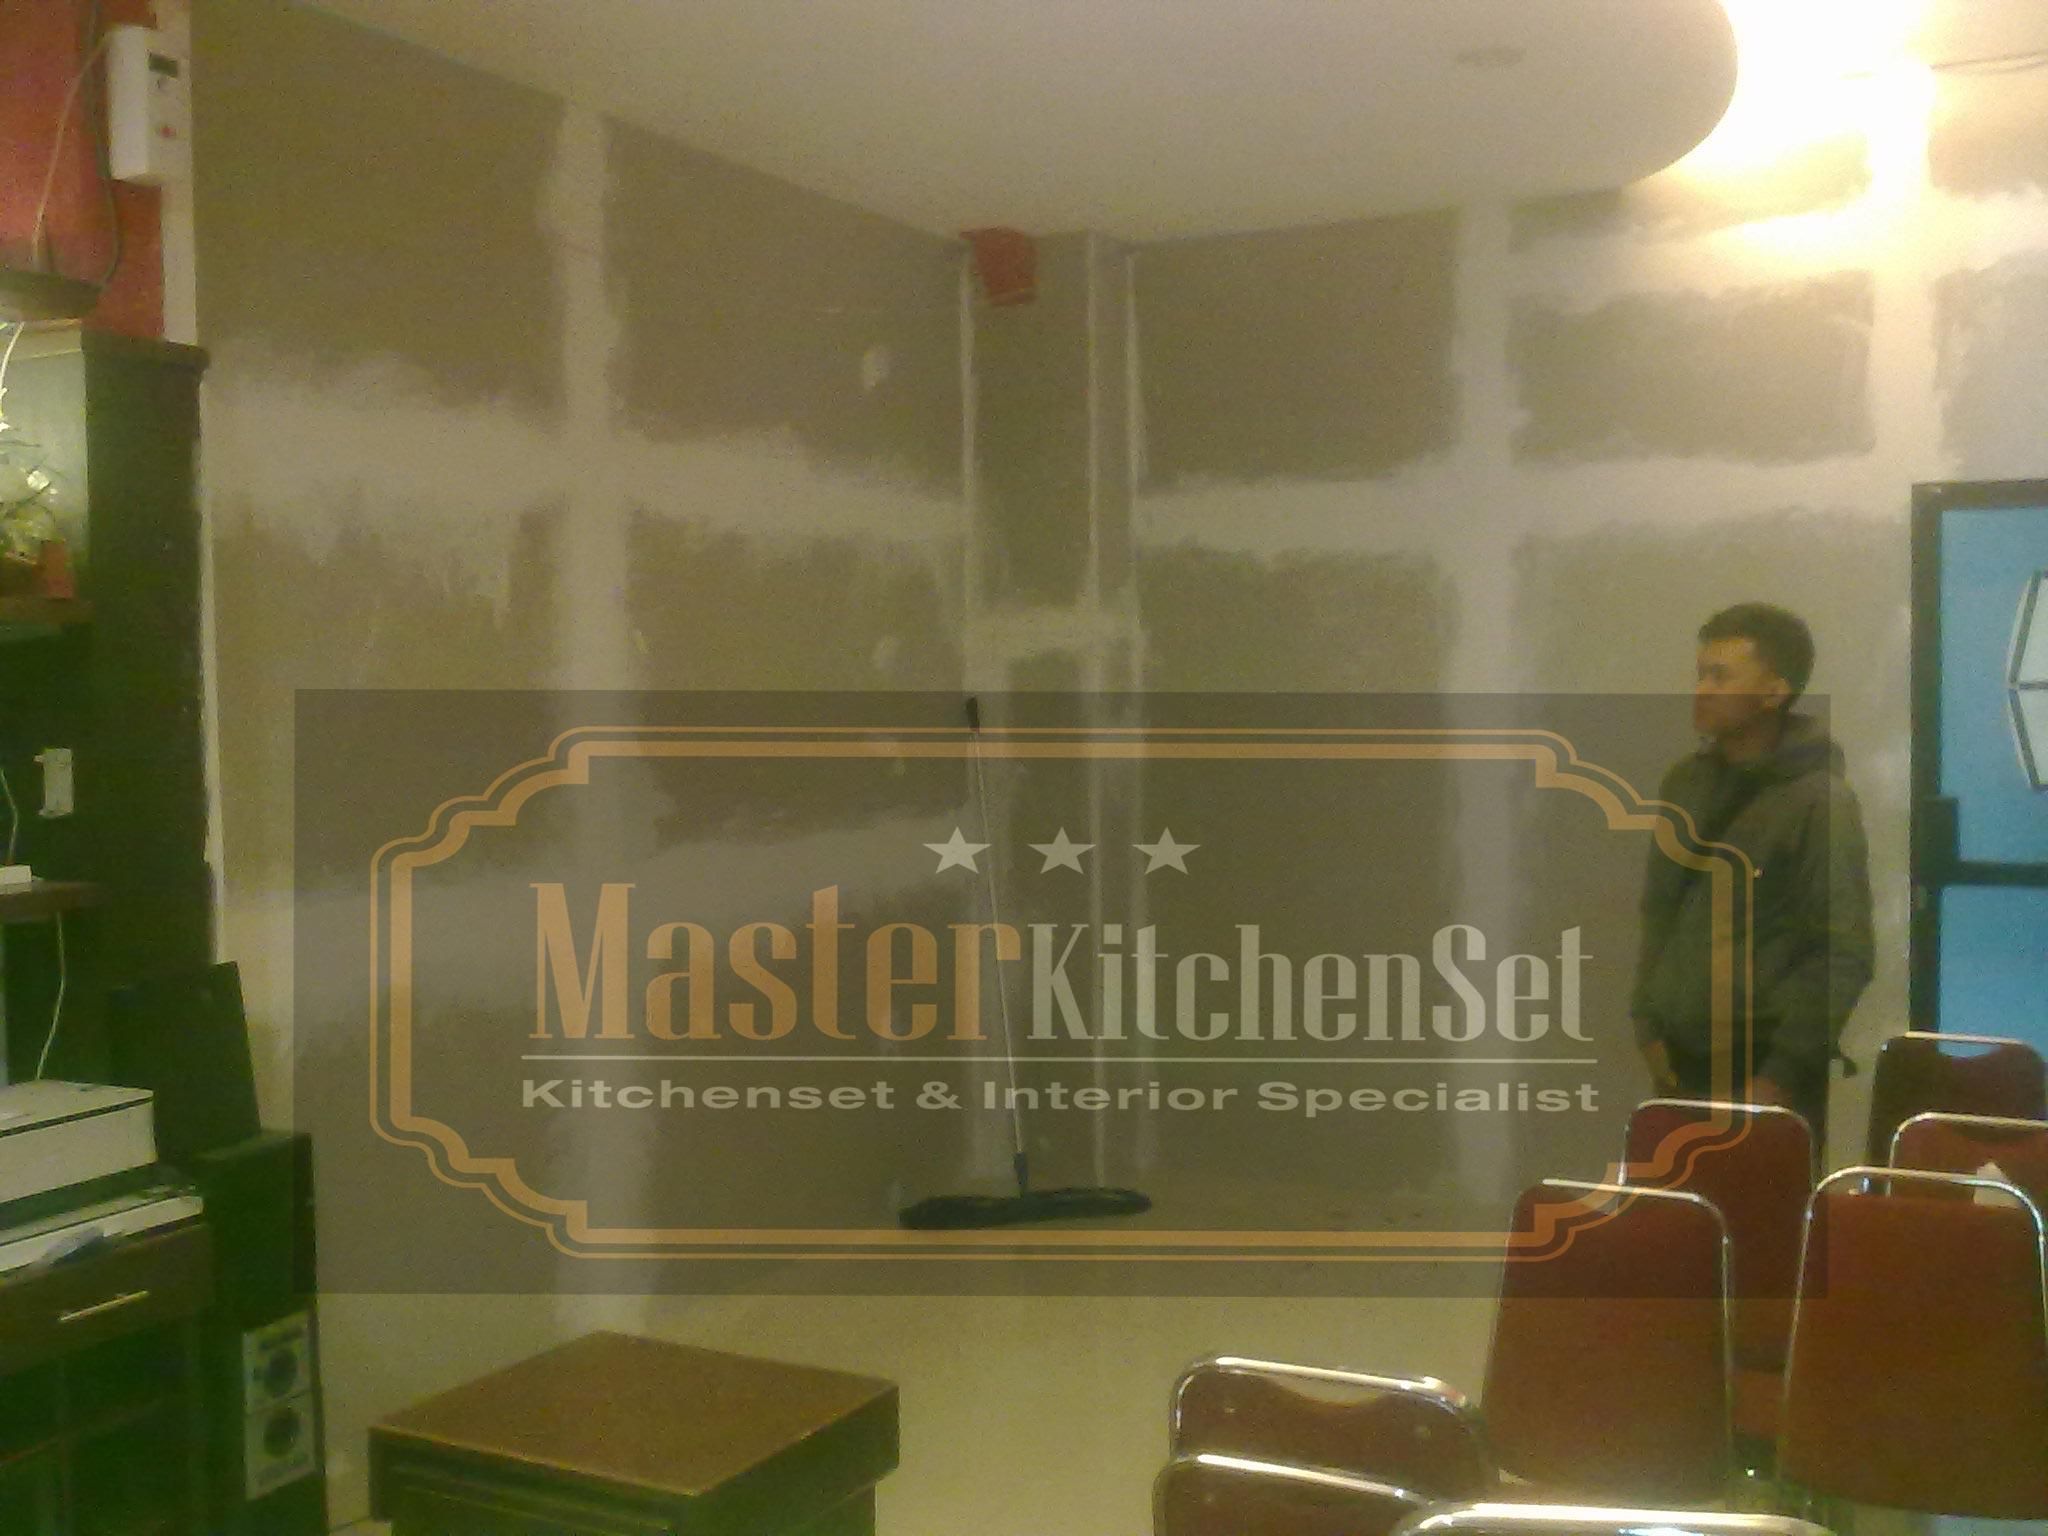 Desain interior ruang ppds rs moewardi solo kitchen set for Kitchen set yang sudah jadi